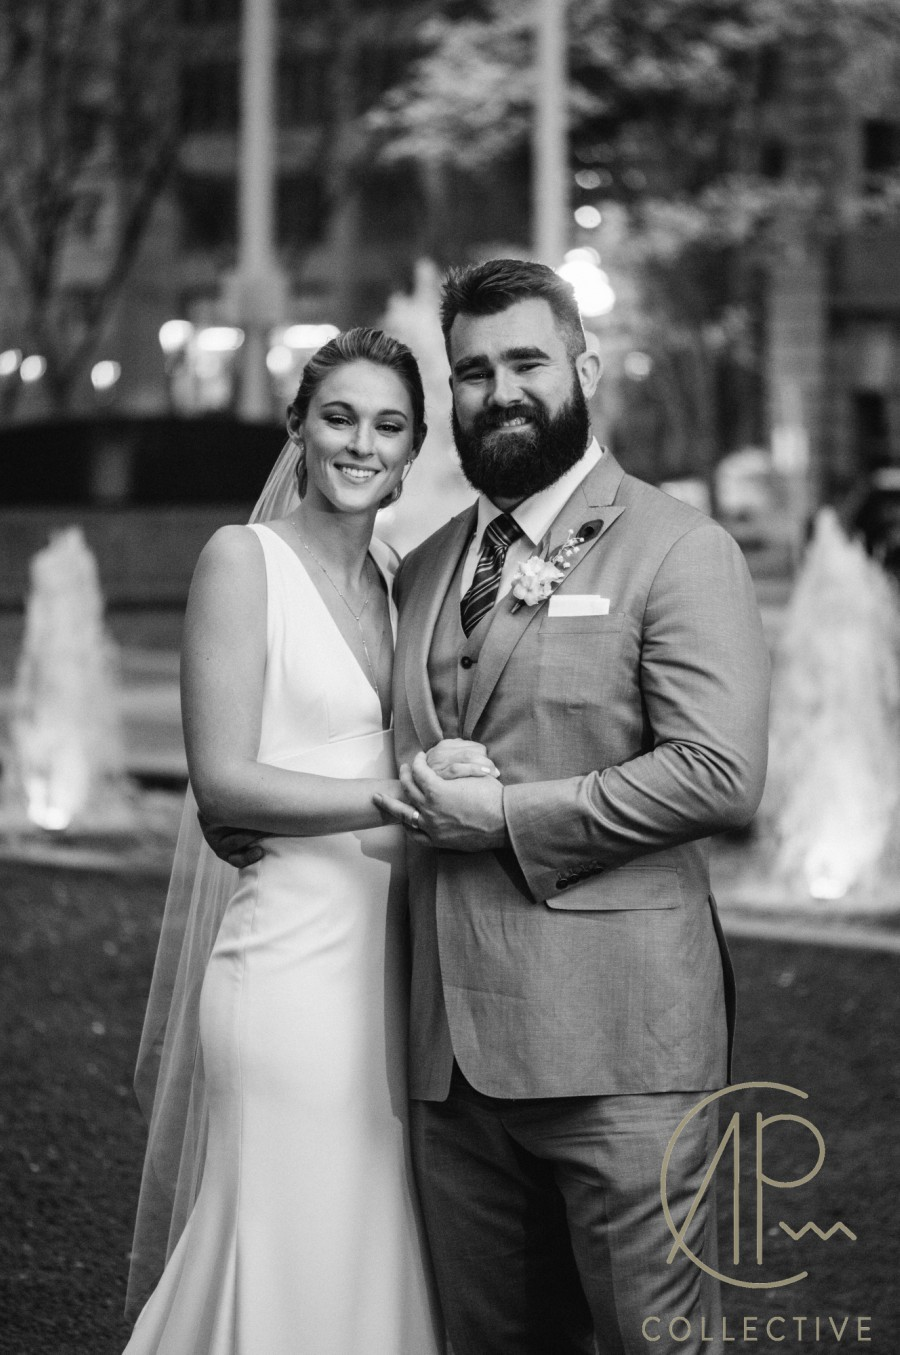 Photos Jason Kelce Got Married In Philly This Weekend